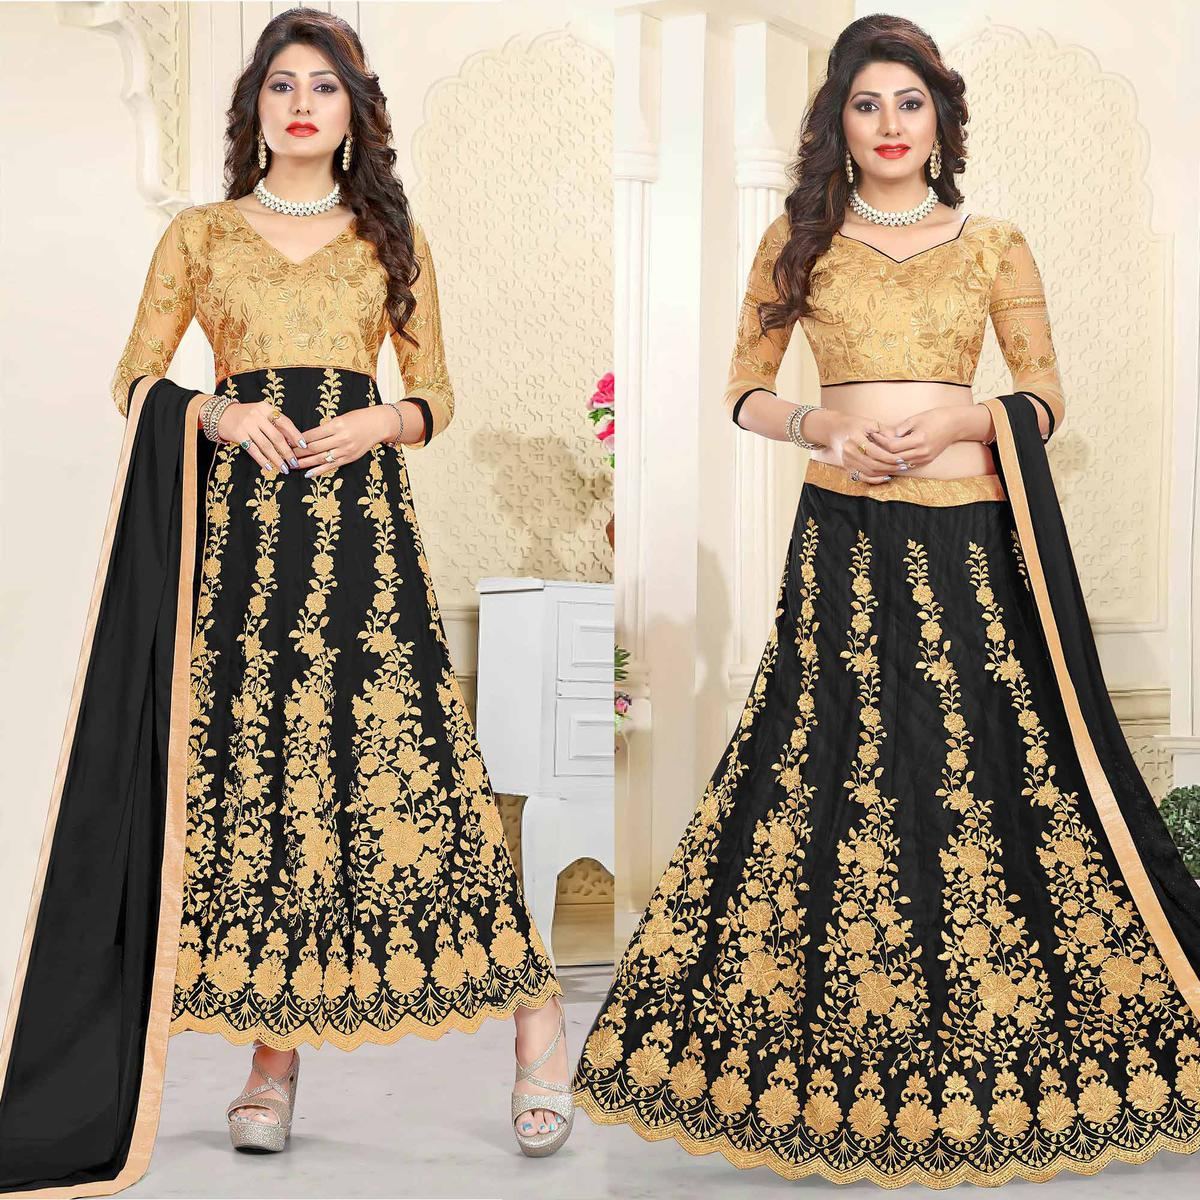 Stunning Beige-Black Colored Heavy Embroidered Art Silk-Net Lehenga / Anarkali